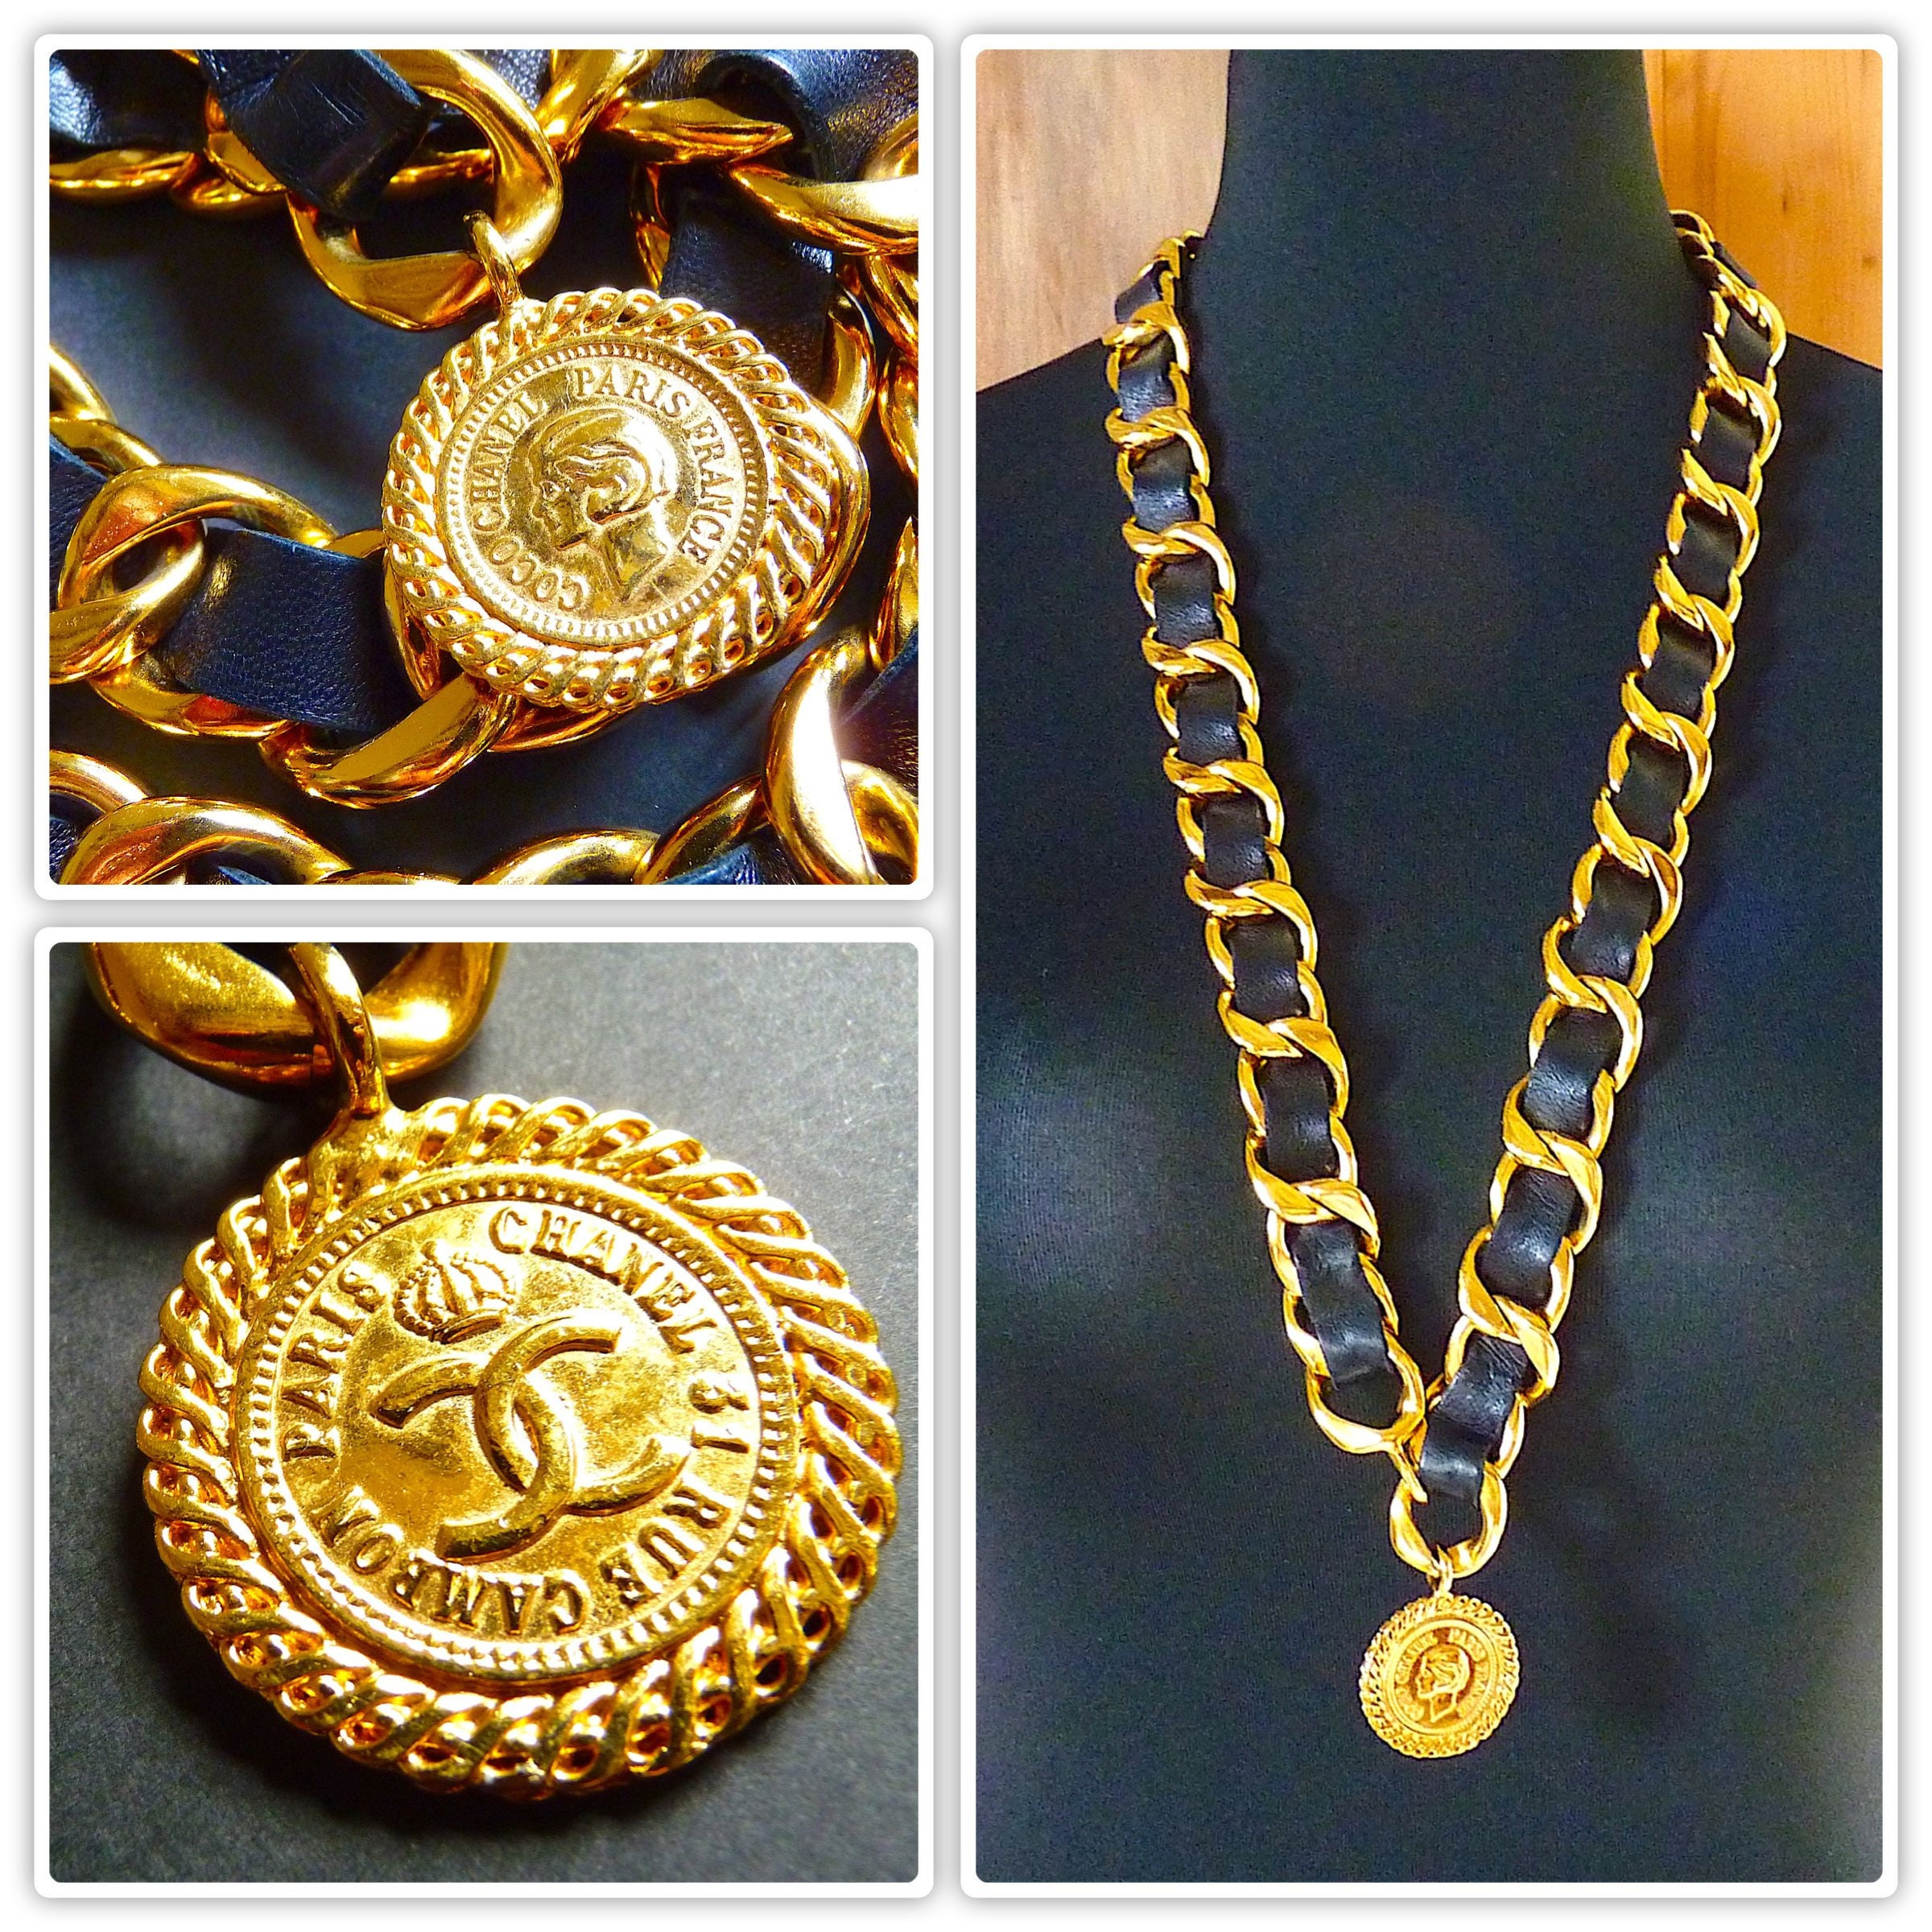 8e3fe710d4dbed Authentic CHANEL Necklace CHANEL Chain Belt Gold Black   Etsy